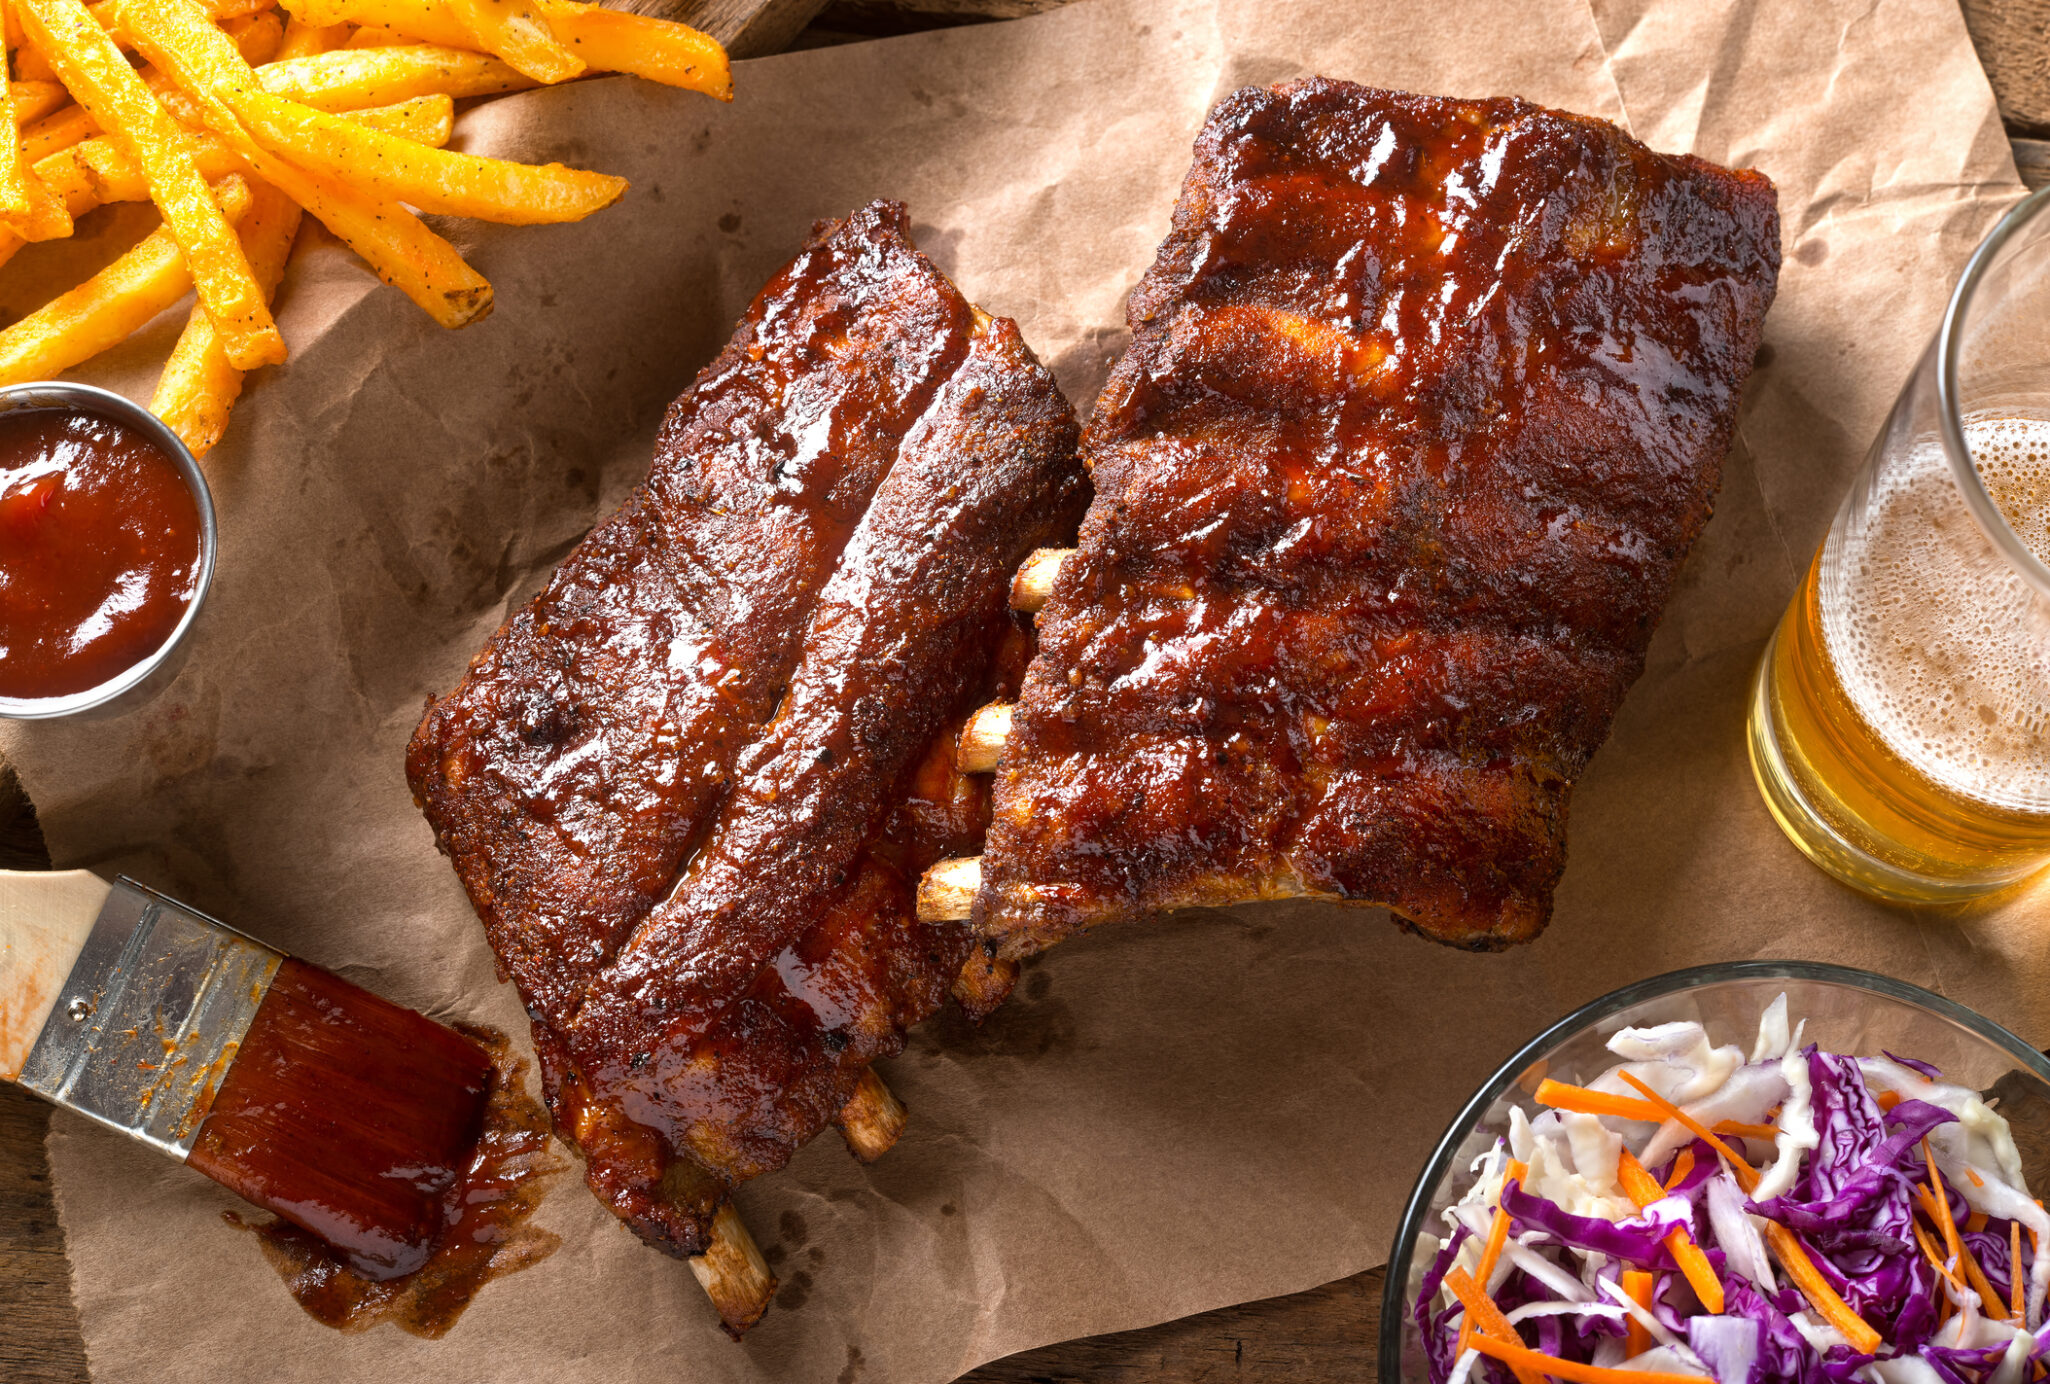 Barbecue Baby Back Ribs being served at Kingswood Senior Living Located in Kansas City, MO.